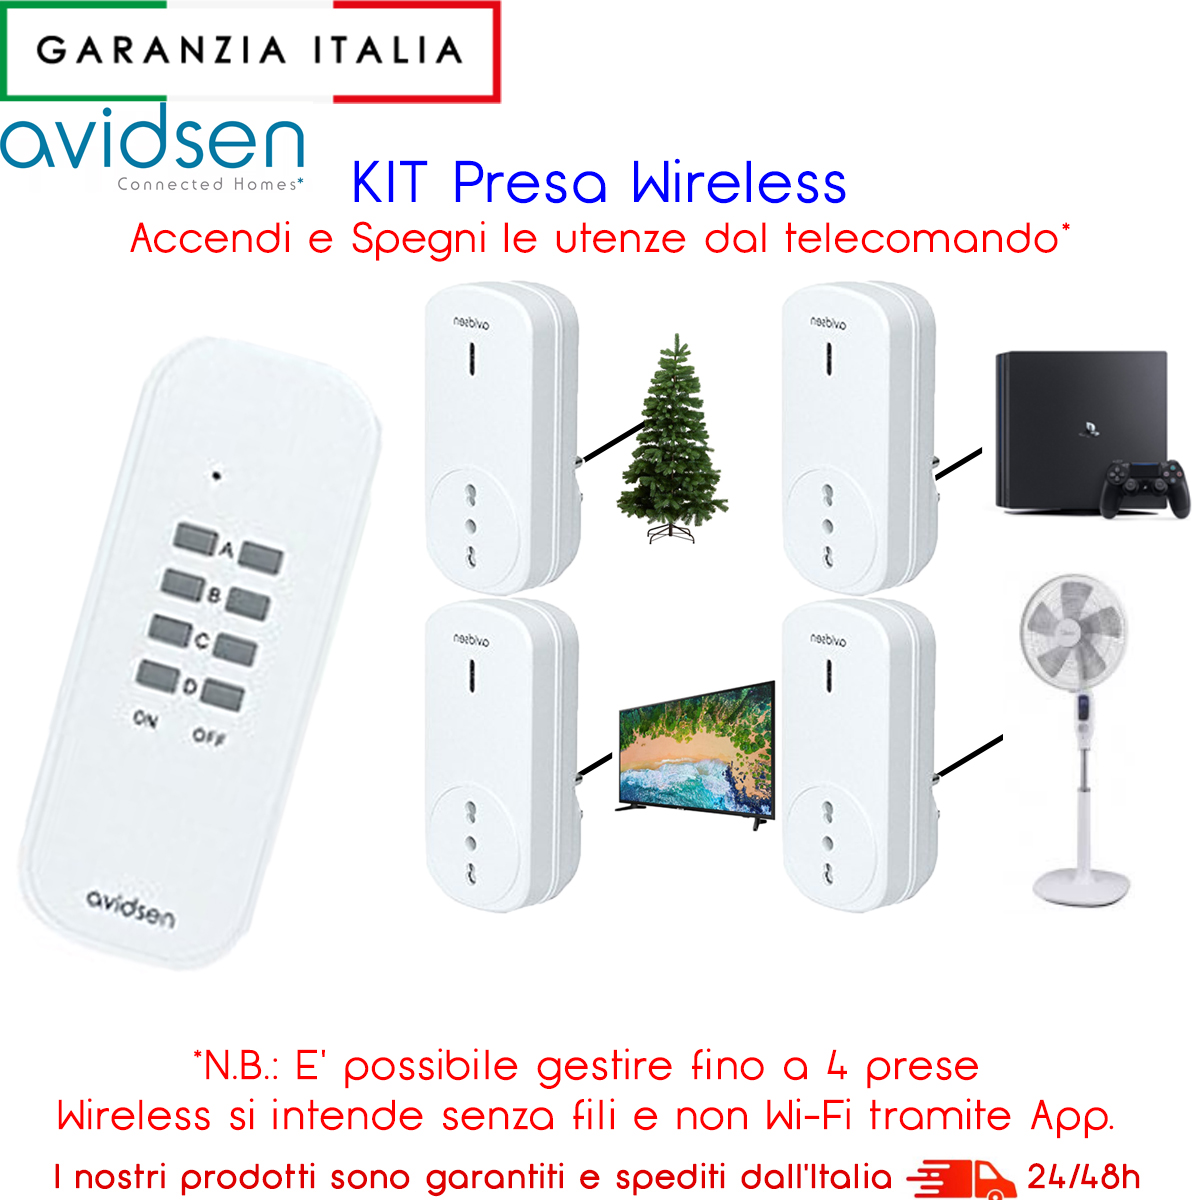 KIT 4 Prese con telecomando wireless per azionare a distanza i tuoi dispositivi